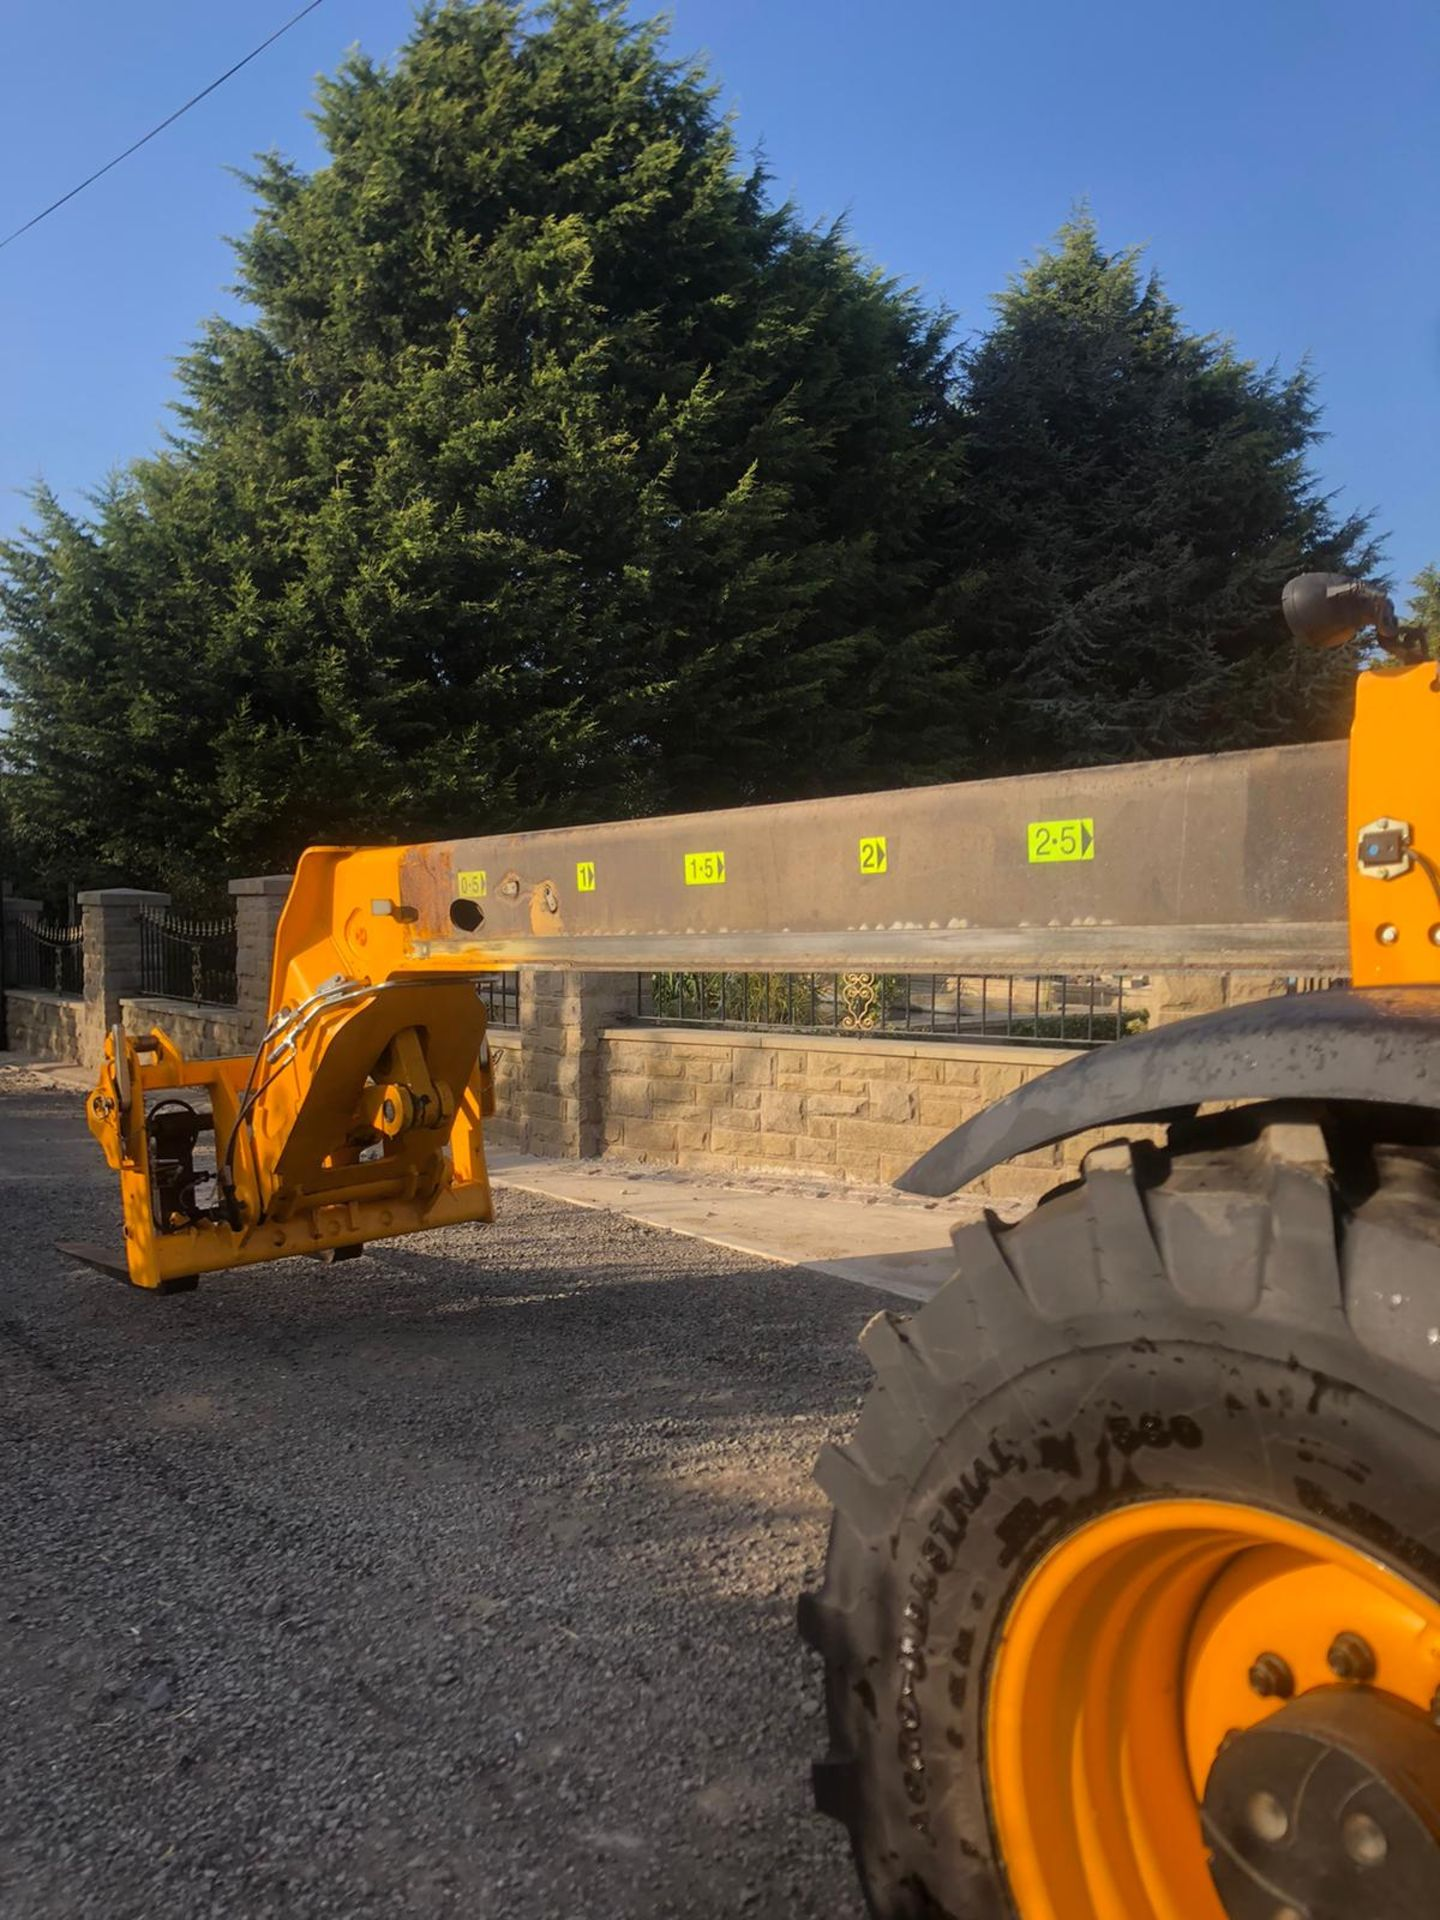 2012 JCB 550-80 AGRI PLUS TELEHANDLER, RUNS, DRIVES AND LIFTS, SHOWING 4214 HOURS *PLUS VAT* - Image 4 of 11